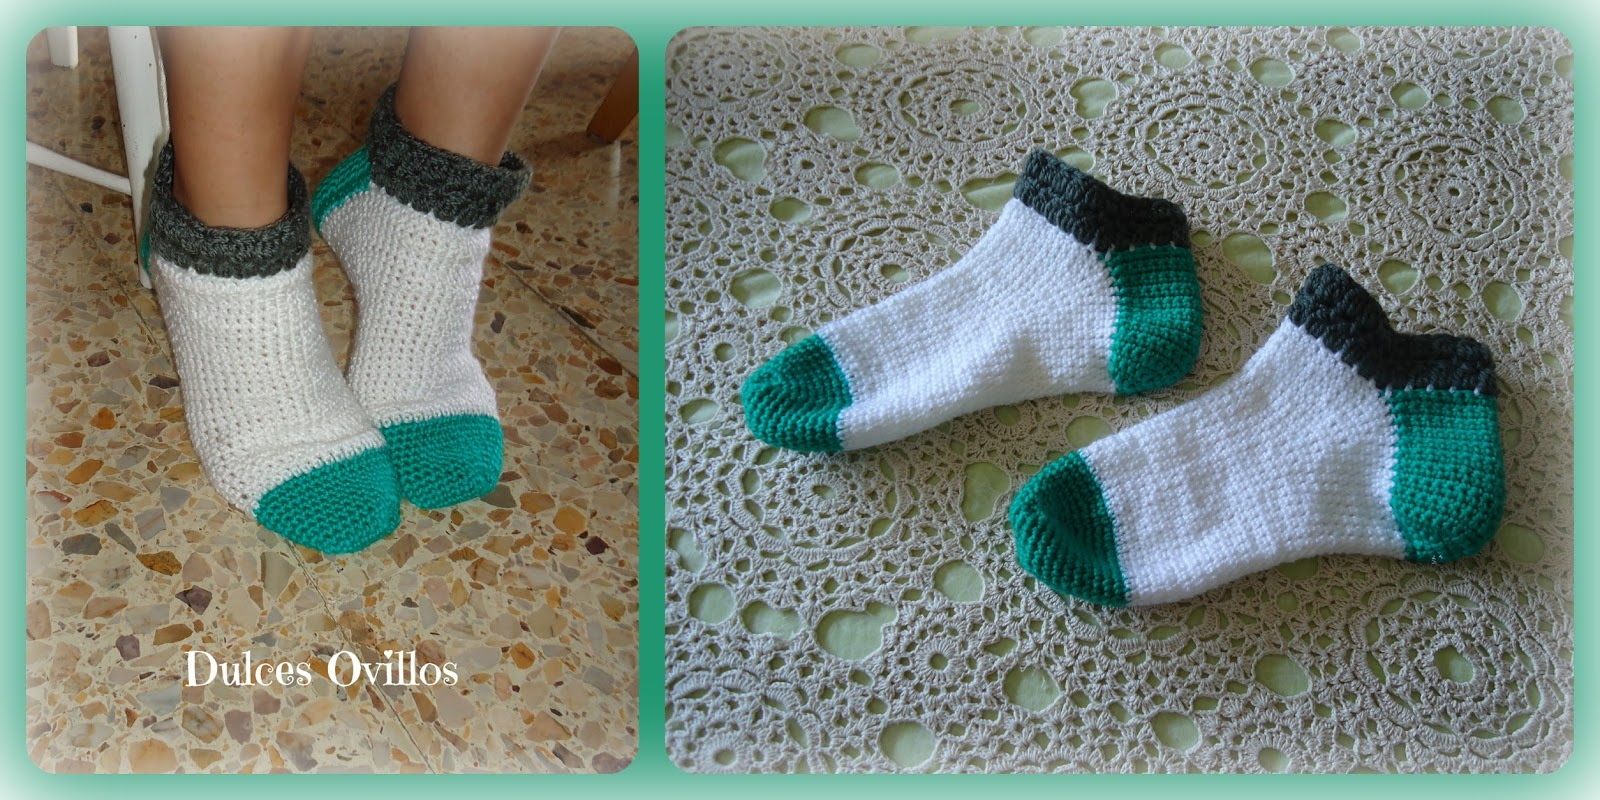 Dulces Ovillos: Calcetines a ganchillo - Crochet socks